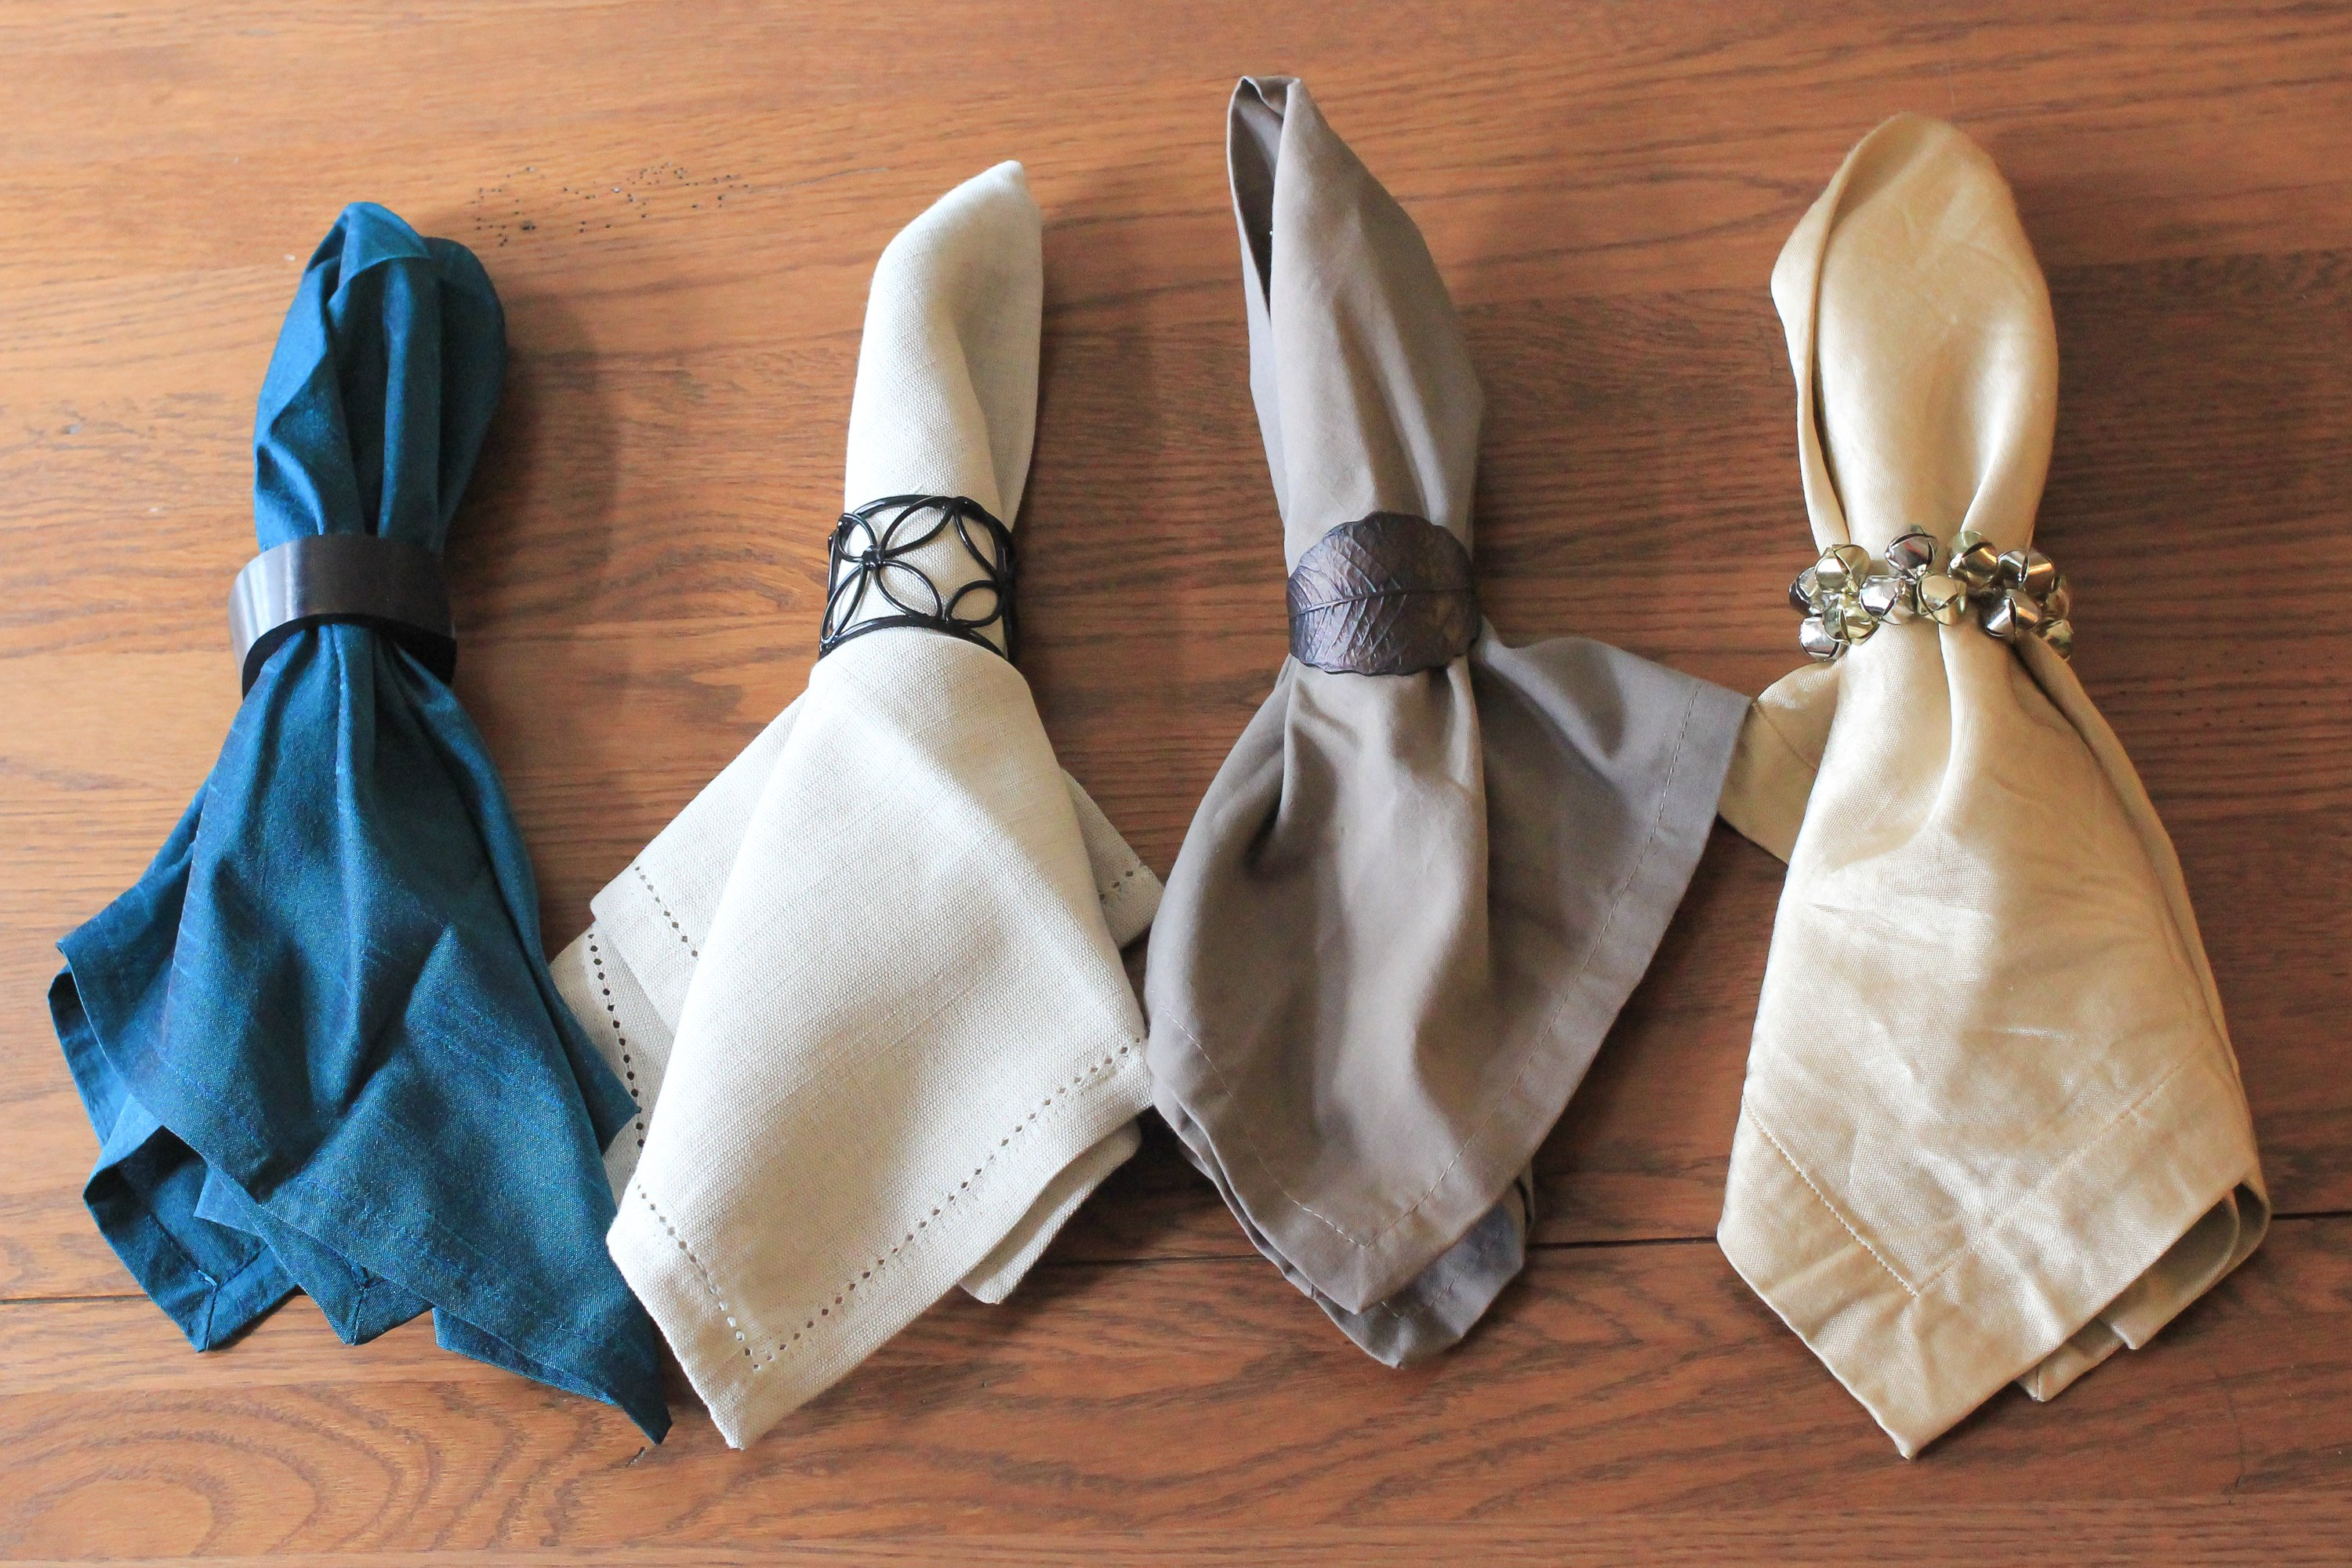 & Table Setting Etiquette: Napkin Placement (with Pictures)   eHow